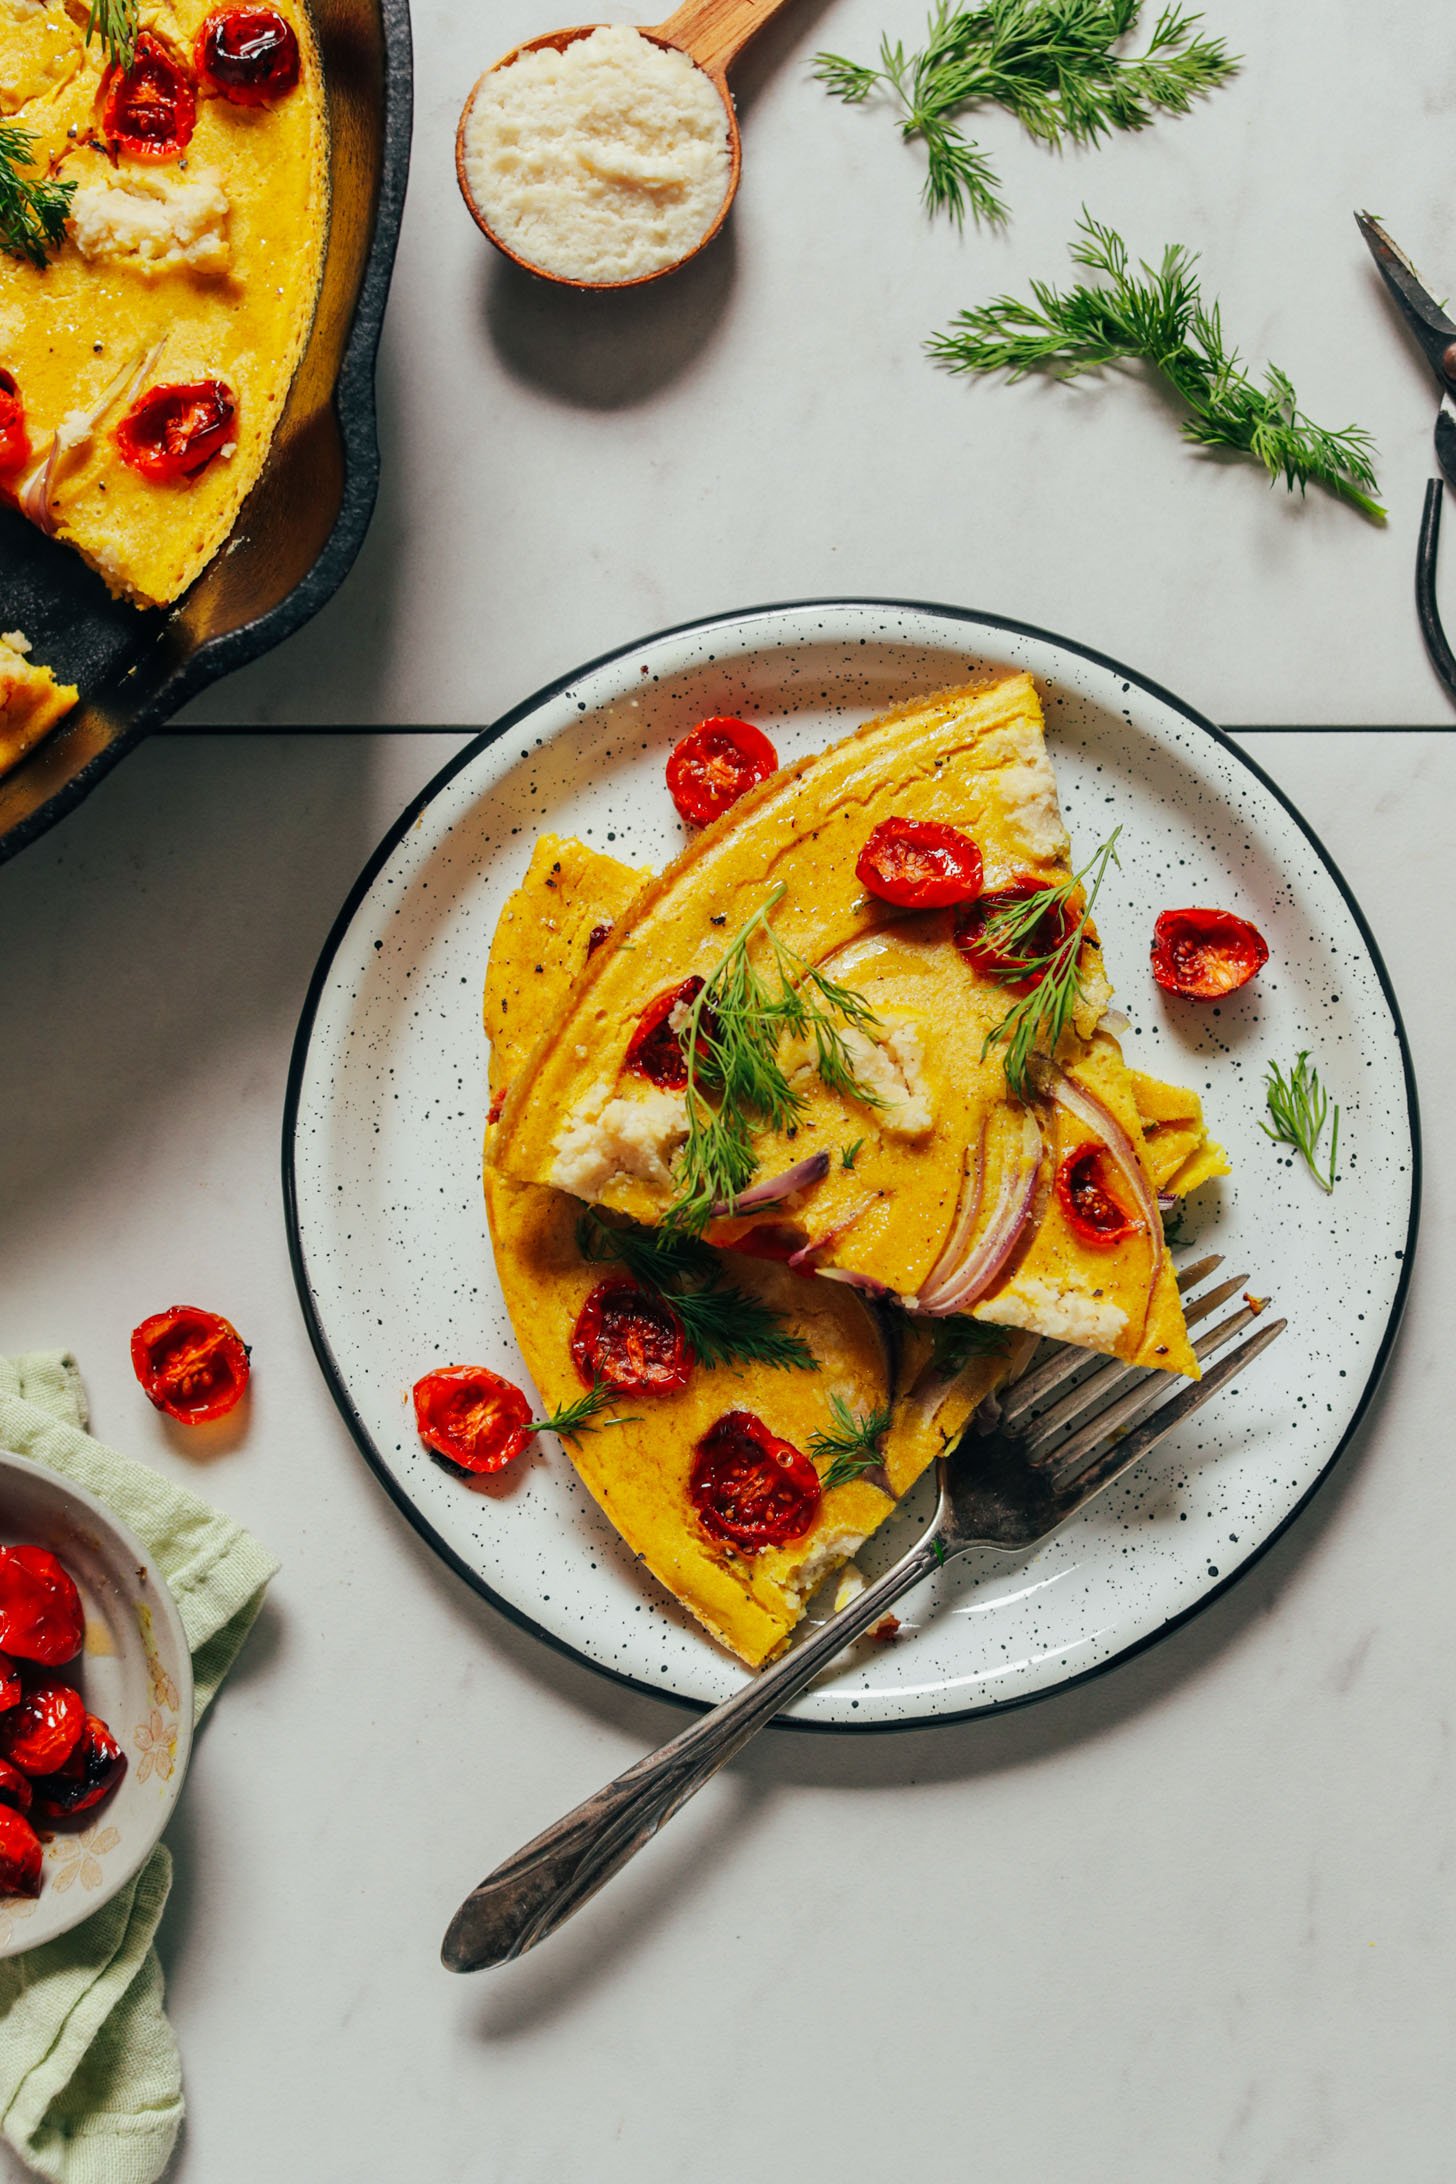 Plate with slices of Vegan Frittata topped with fresh dill and slow roasted tomatoes